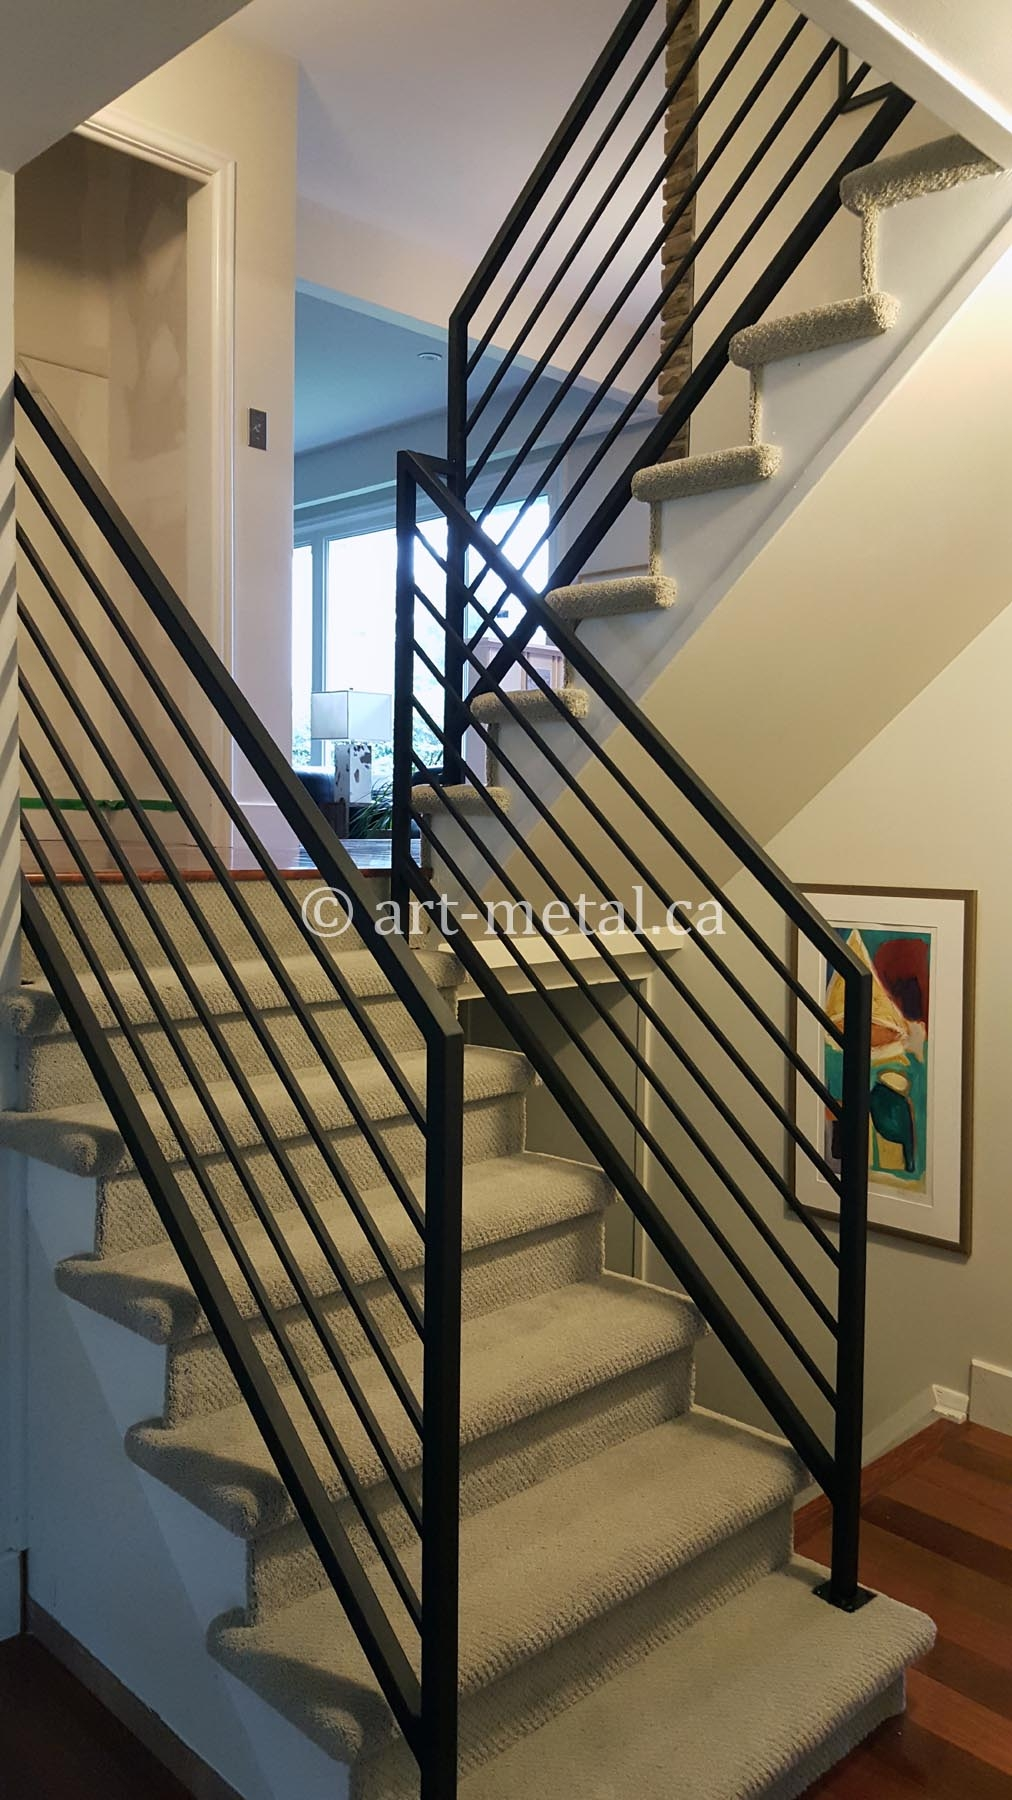 Elegant And Modern Interior Wrought Iron Railings For Stairs   Indoor Railings For Steps